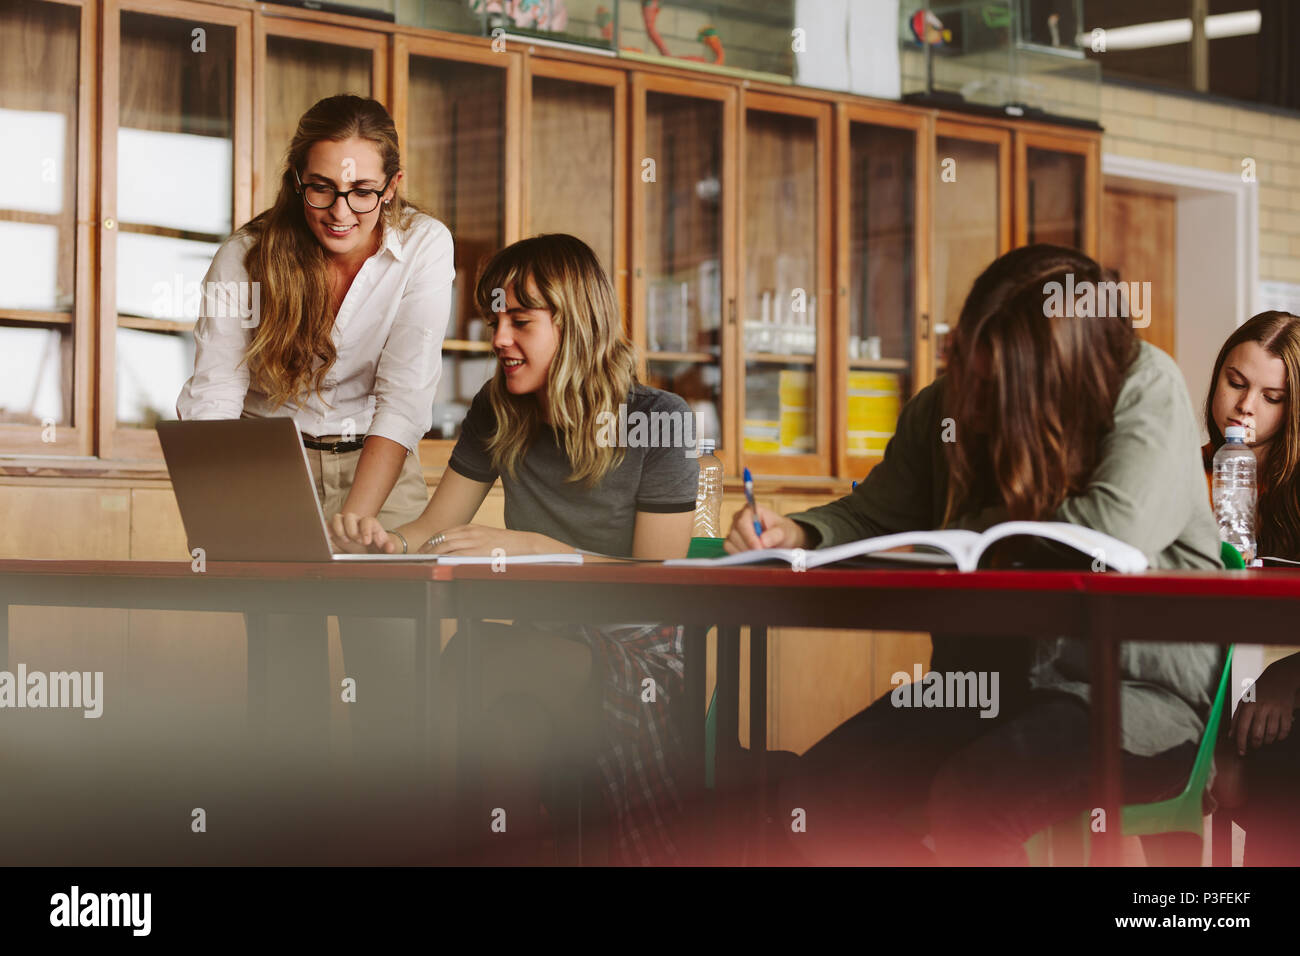 Happy young teacher helping a female student  studying on laptop in classroom. Professor assisting students in lecture. - Stock Image